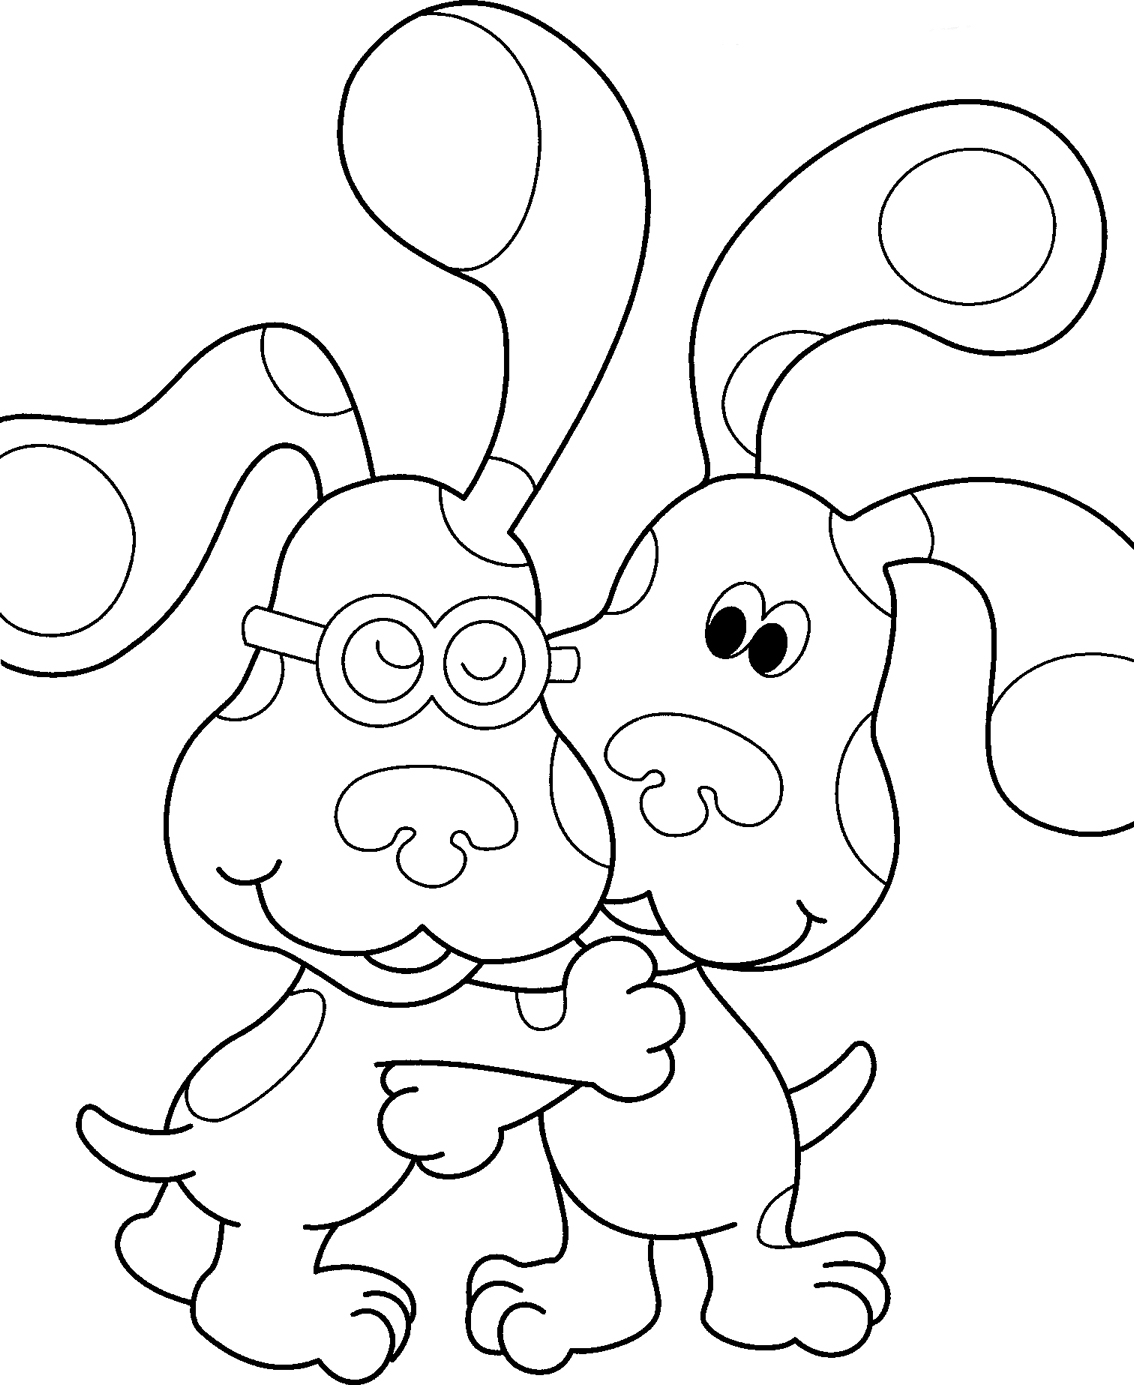 blues clues coloring pages online - photo#8